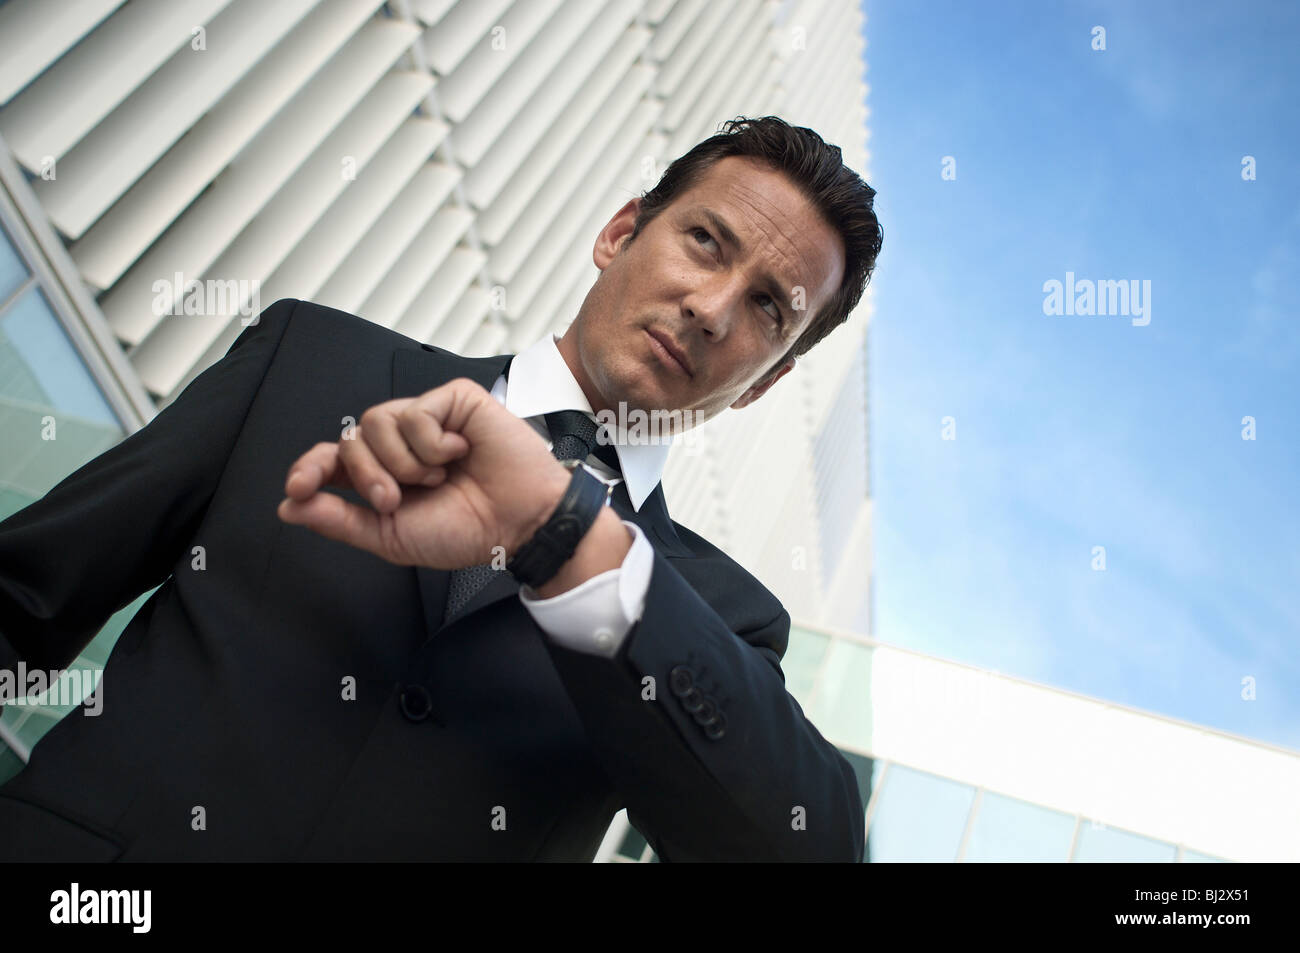 Businessman keeping time with watch - Stock Image